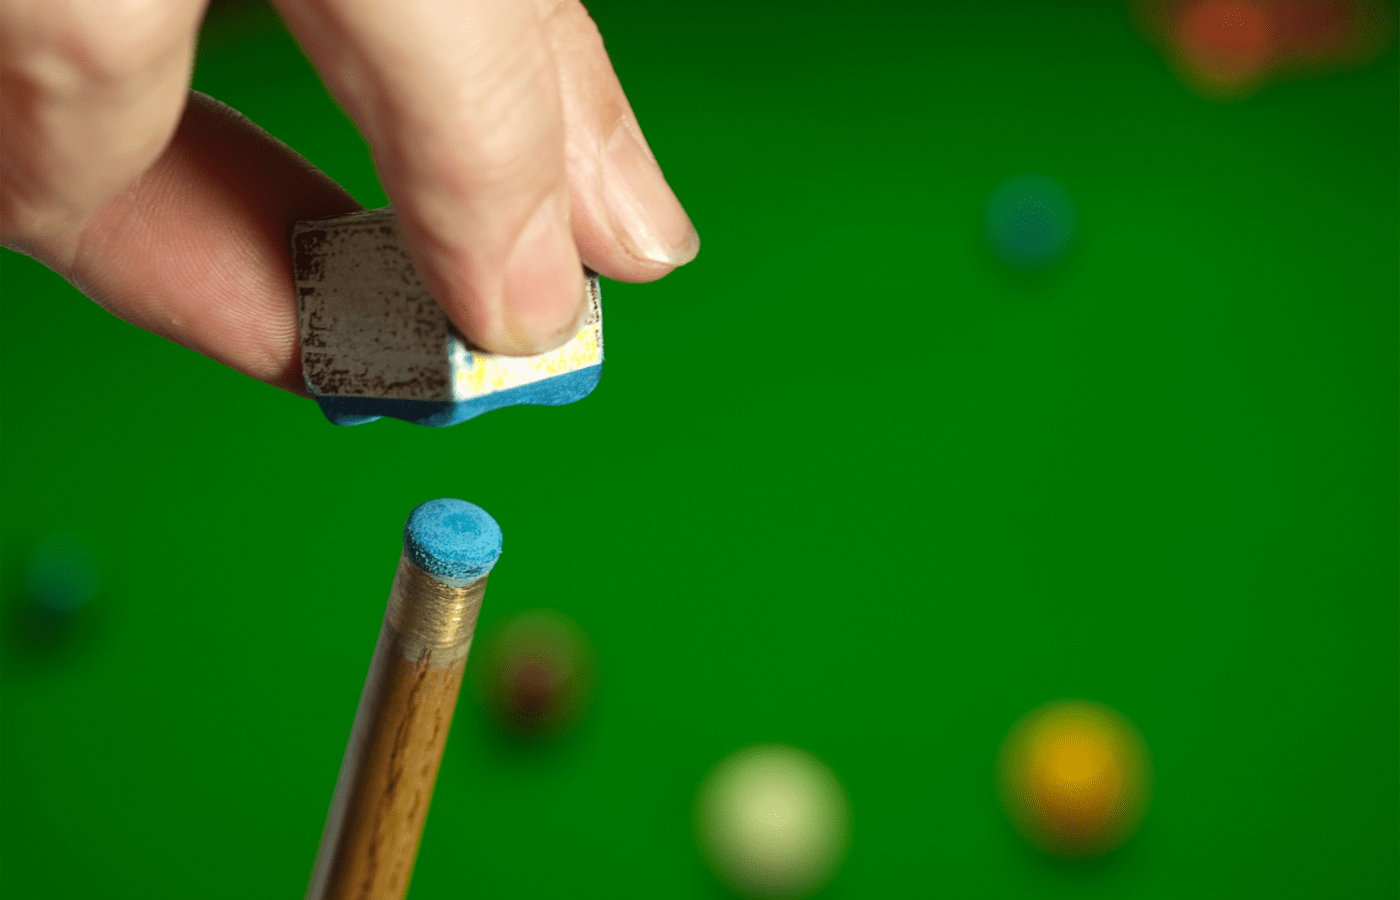 why do snooker players chalk their cue so much